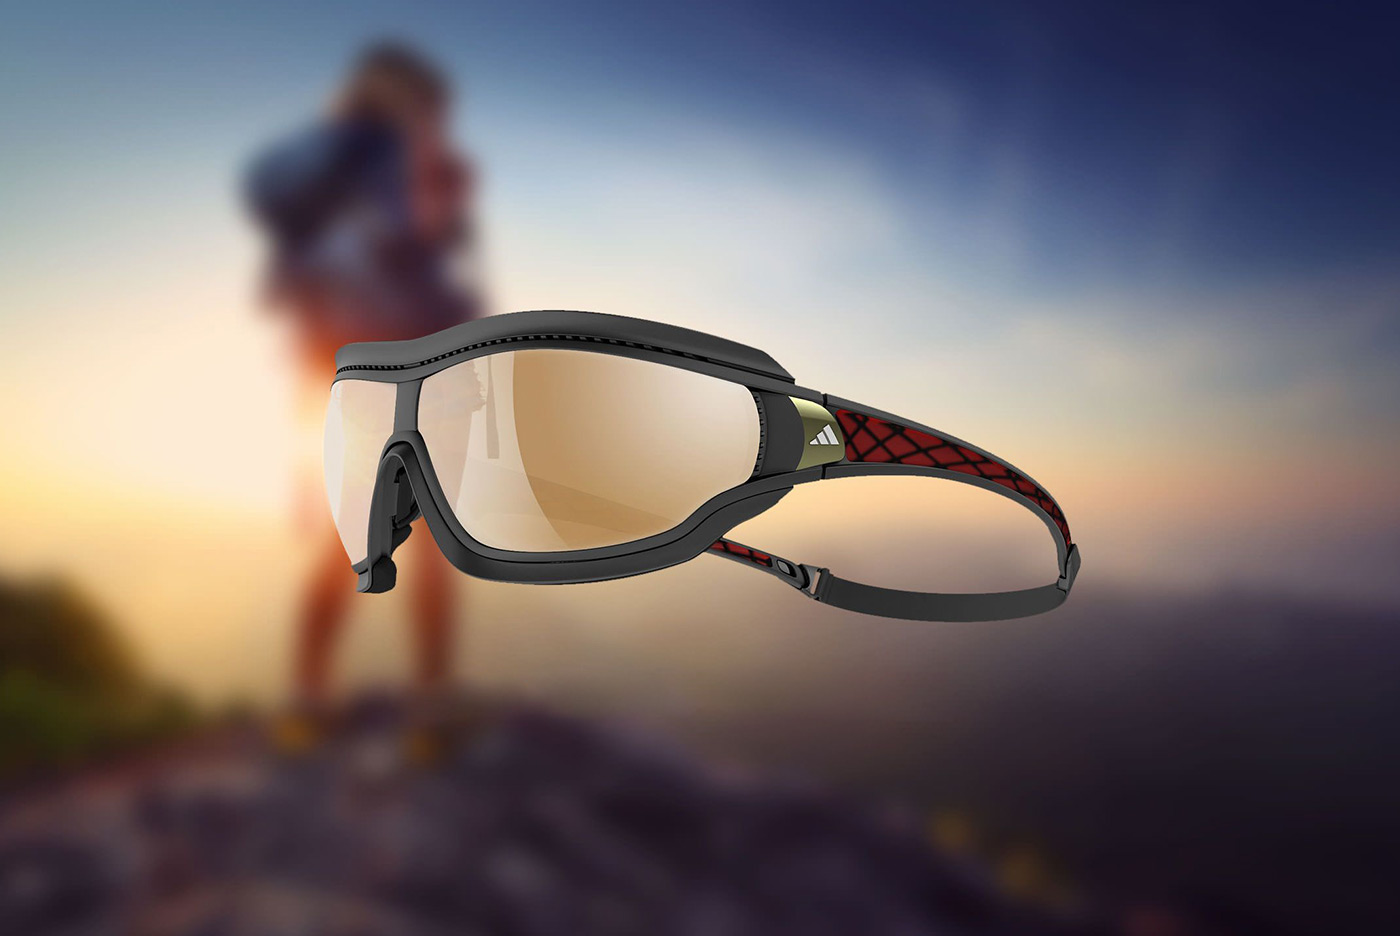 They create glasses that measure sports activity post thumbnail image